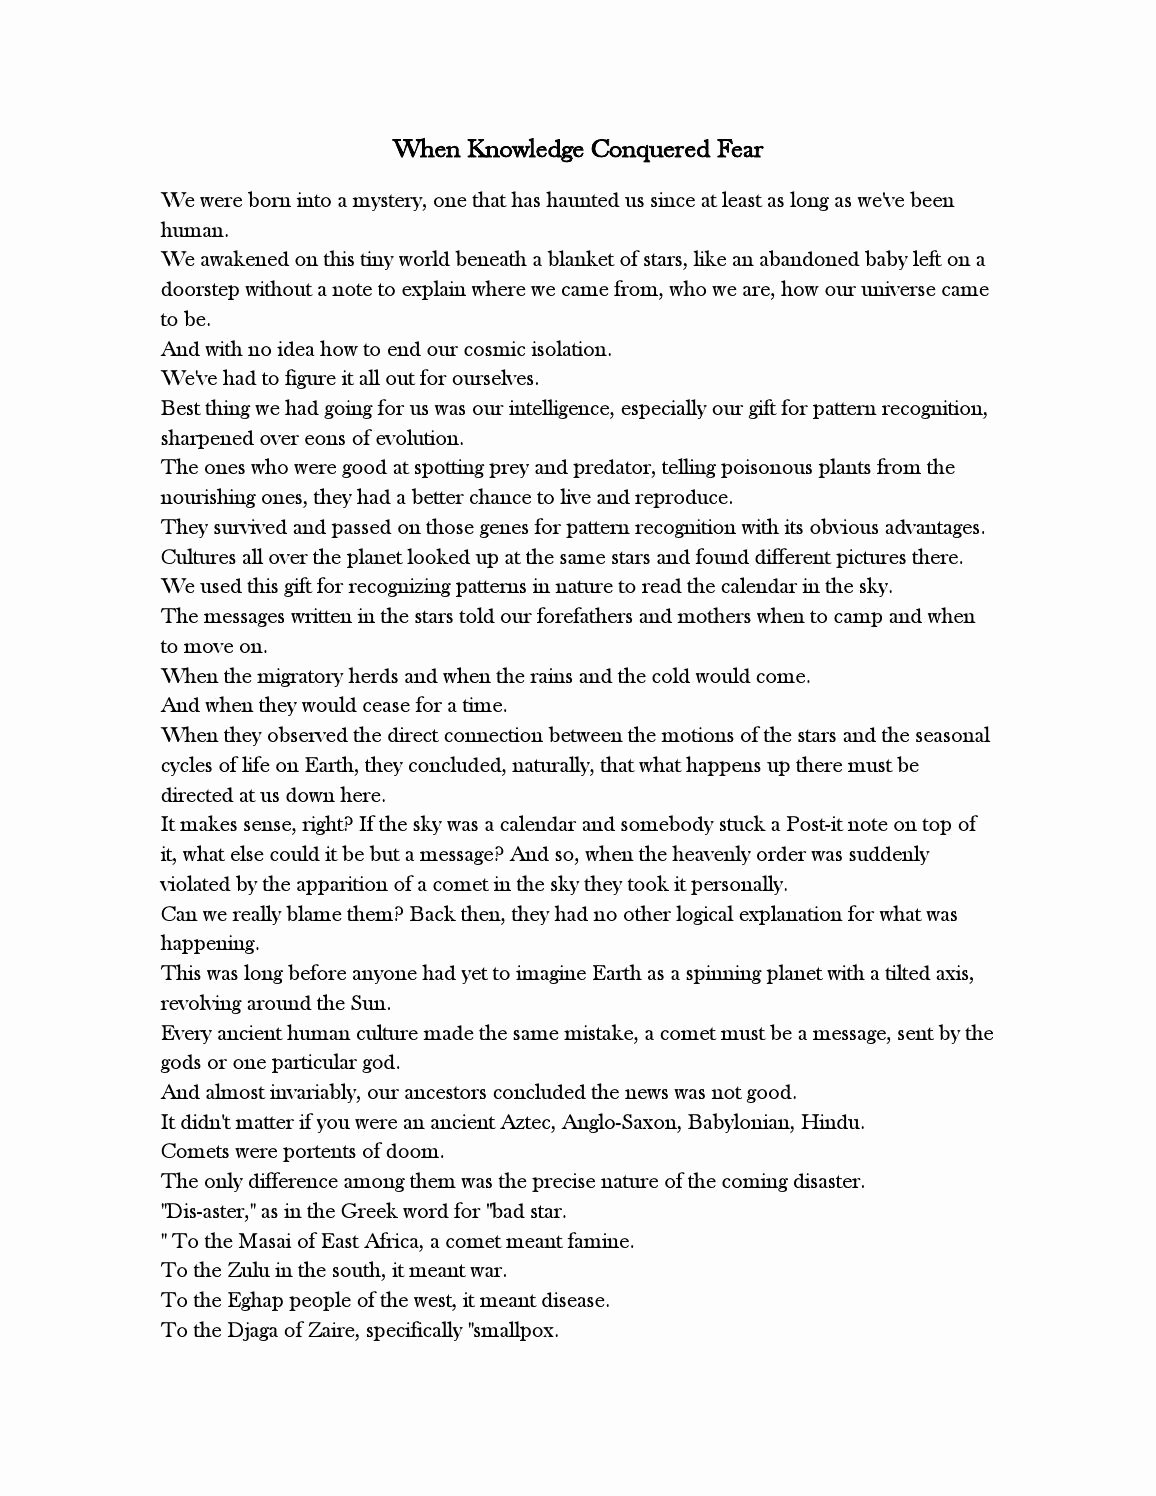 50 Cosmos Episode 1 Worksheet Answers